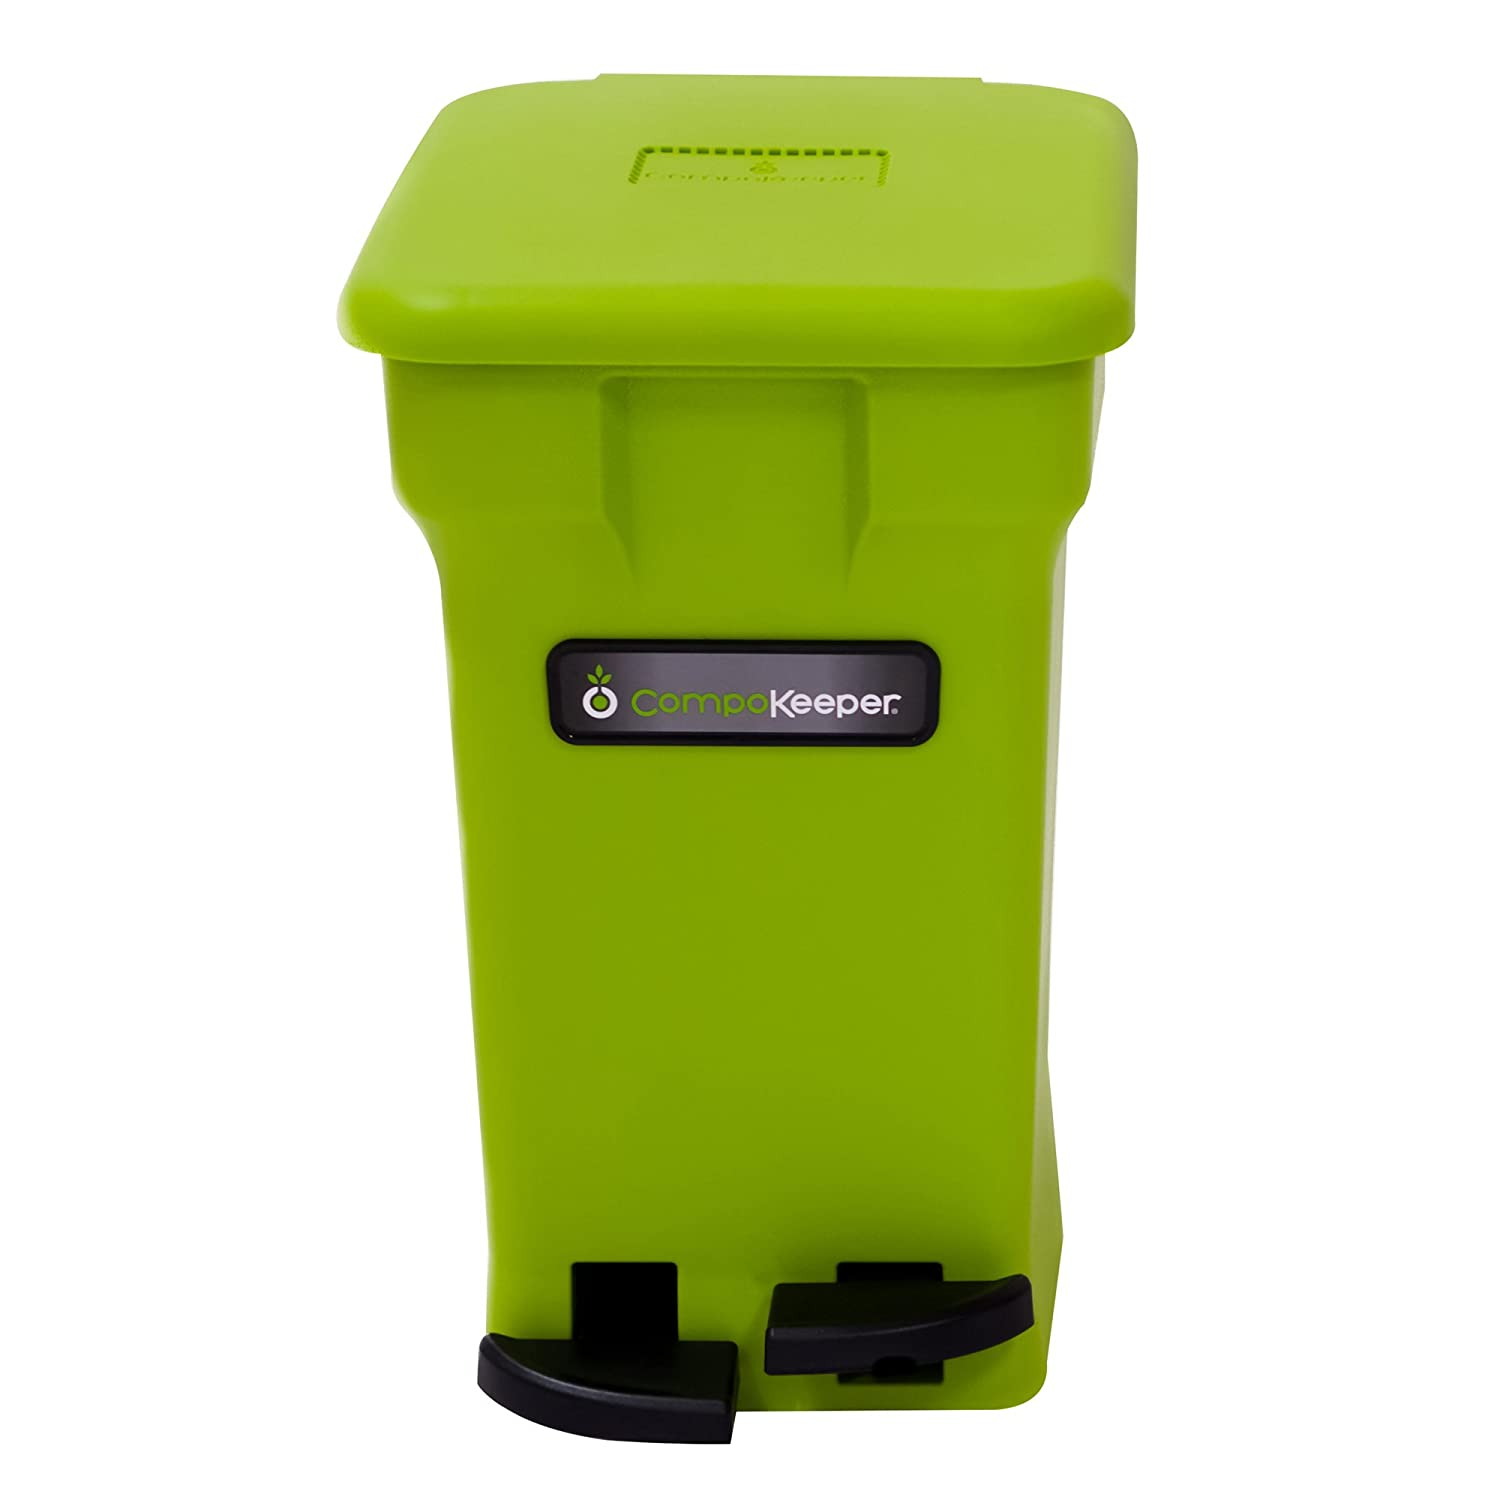 Amazon.com: CompoKeeper Kitchen Compost Bin, Green, 6 Gallon: Kitchen U0026  Dining